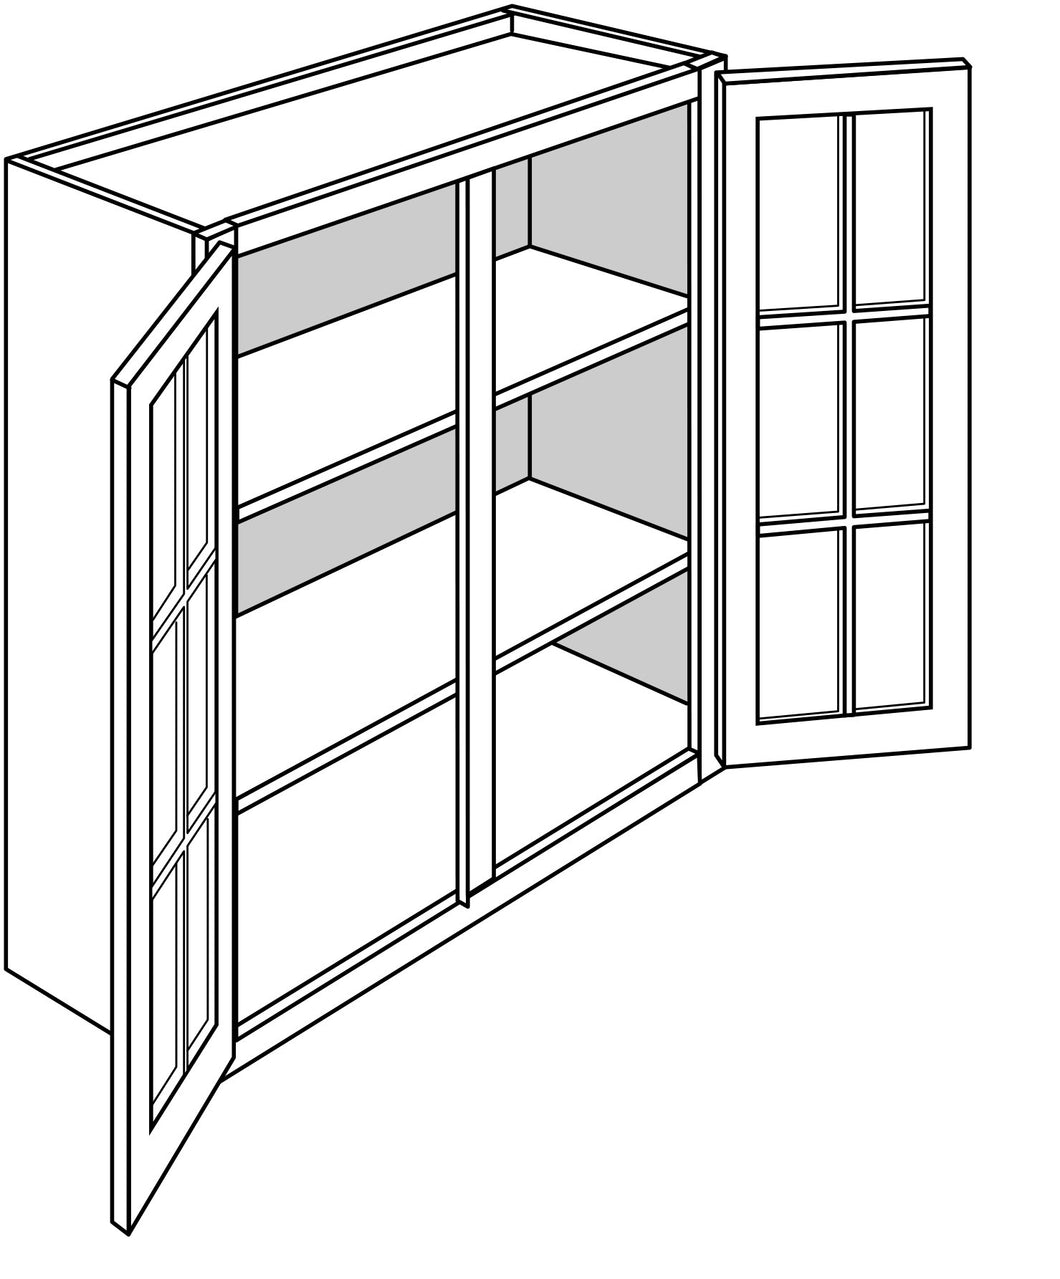 TRENTON WALL CABINETS WITH GLASS DOORS: 36